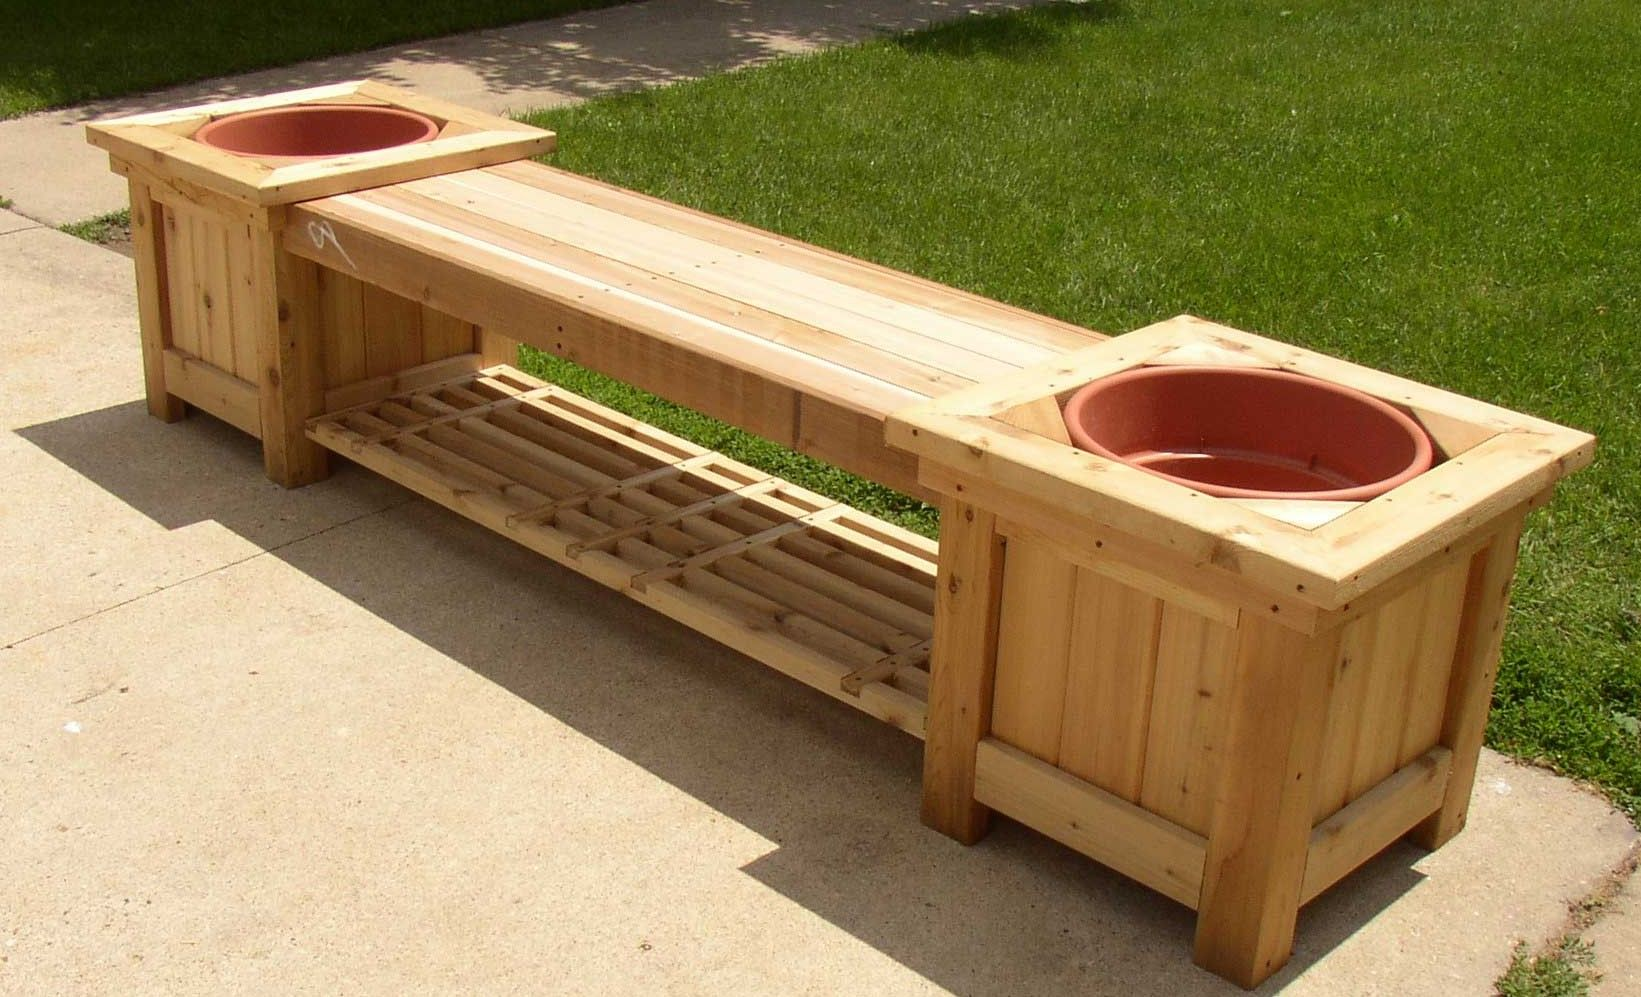 Diy Wood Planter Bench Plans Wooden Pdf Build Woodworking